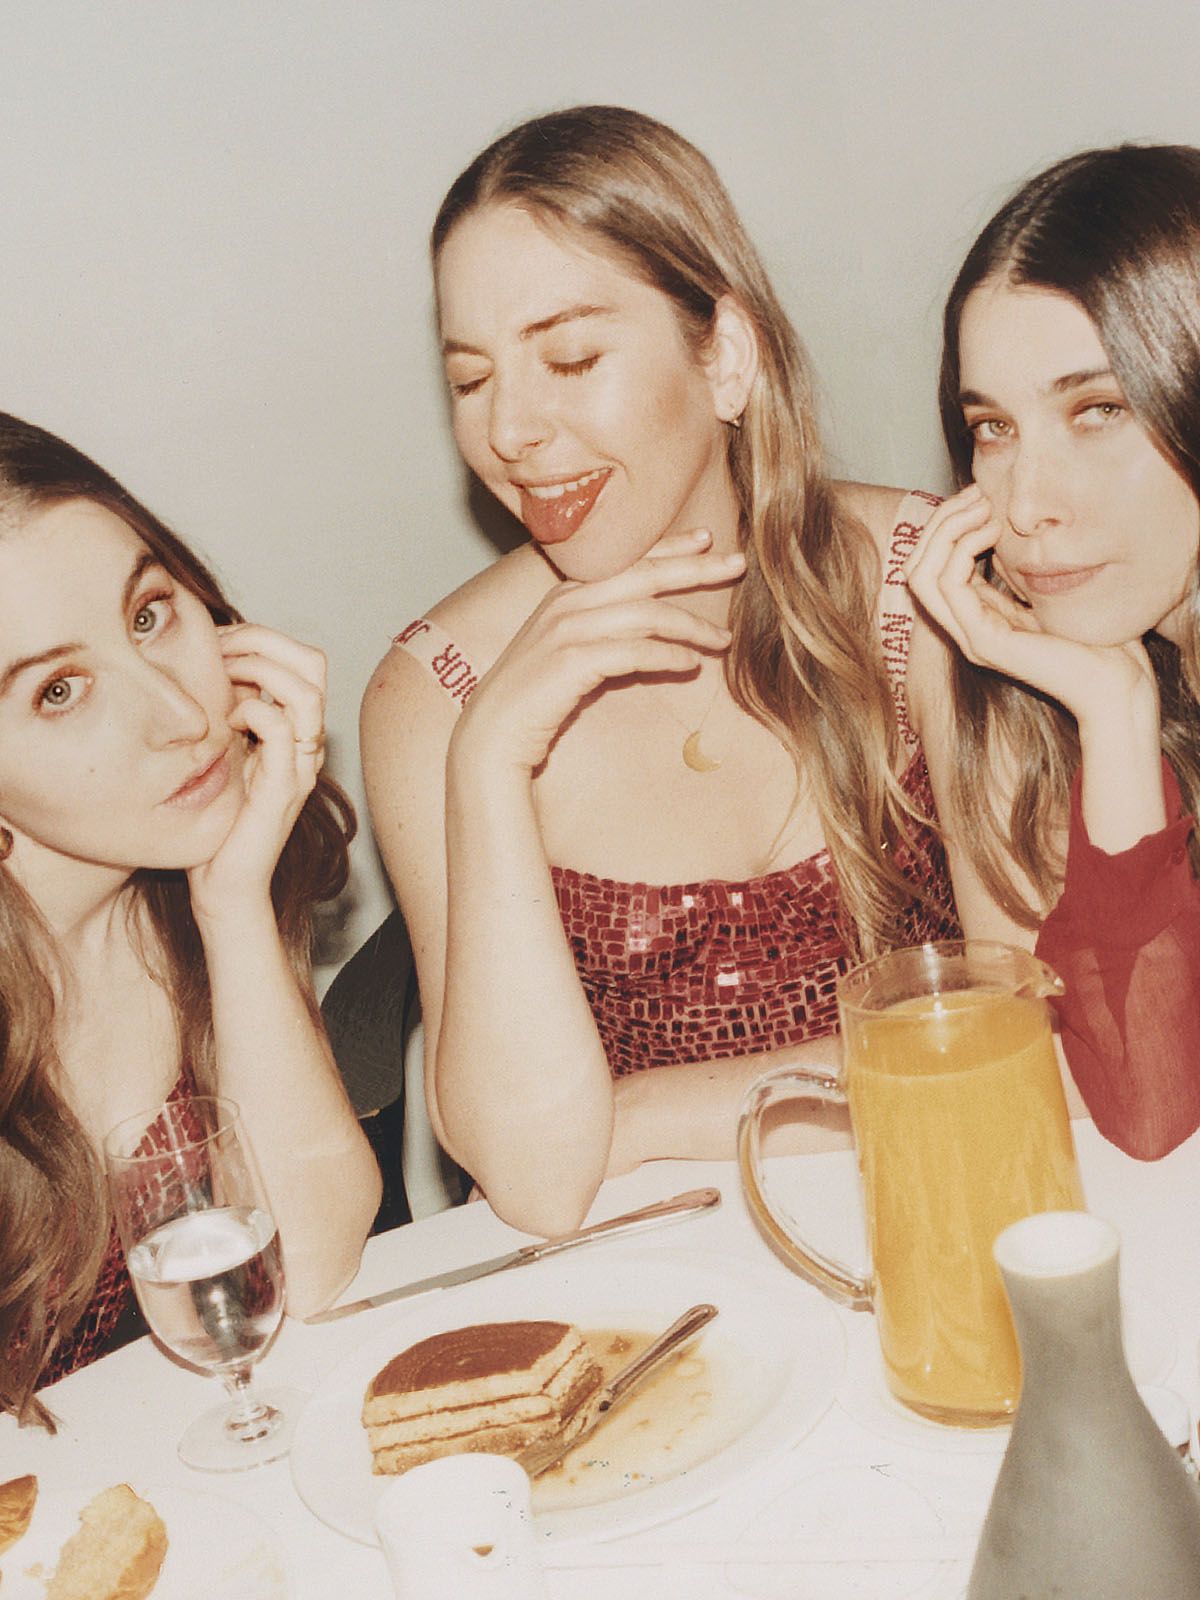 HAIM's latest album delivers the intimate, self-reflective anthems of 2020